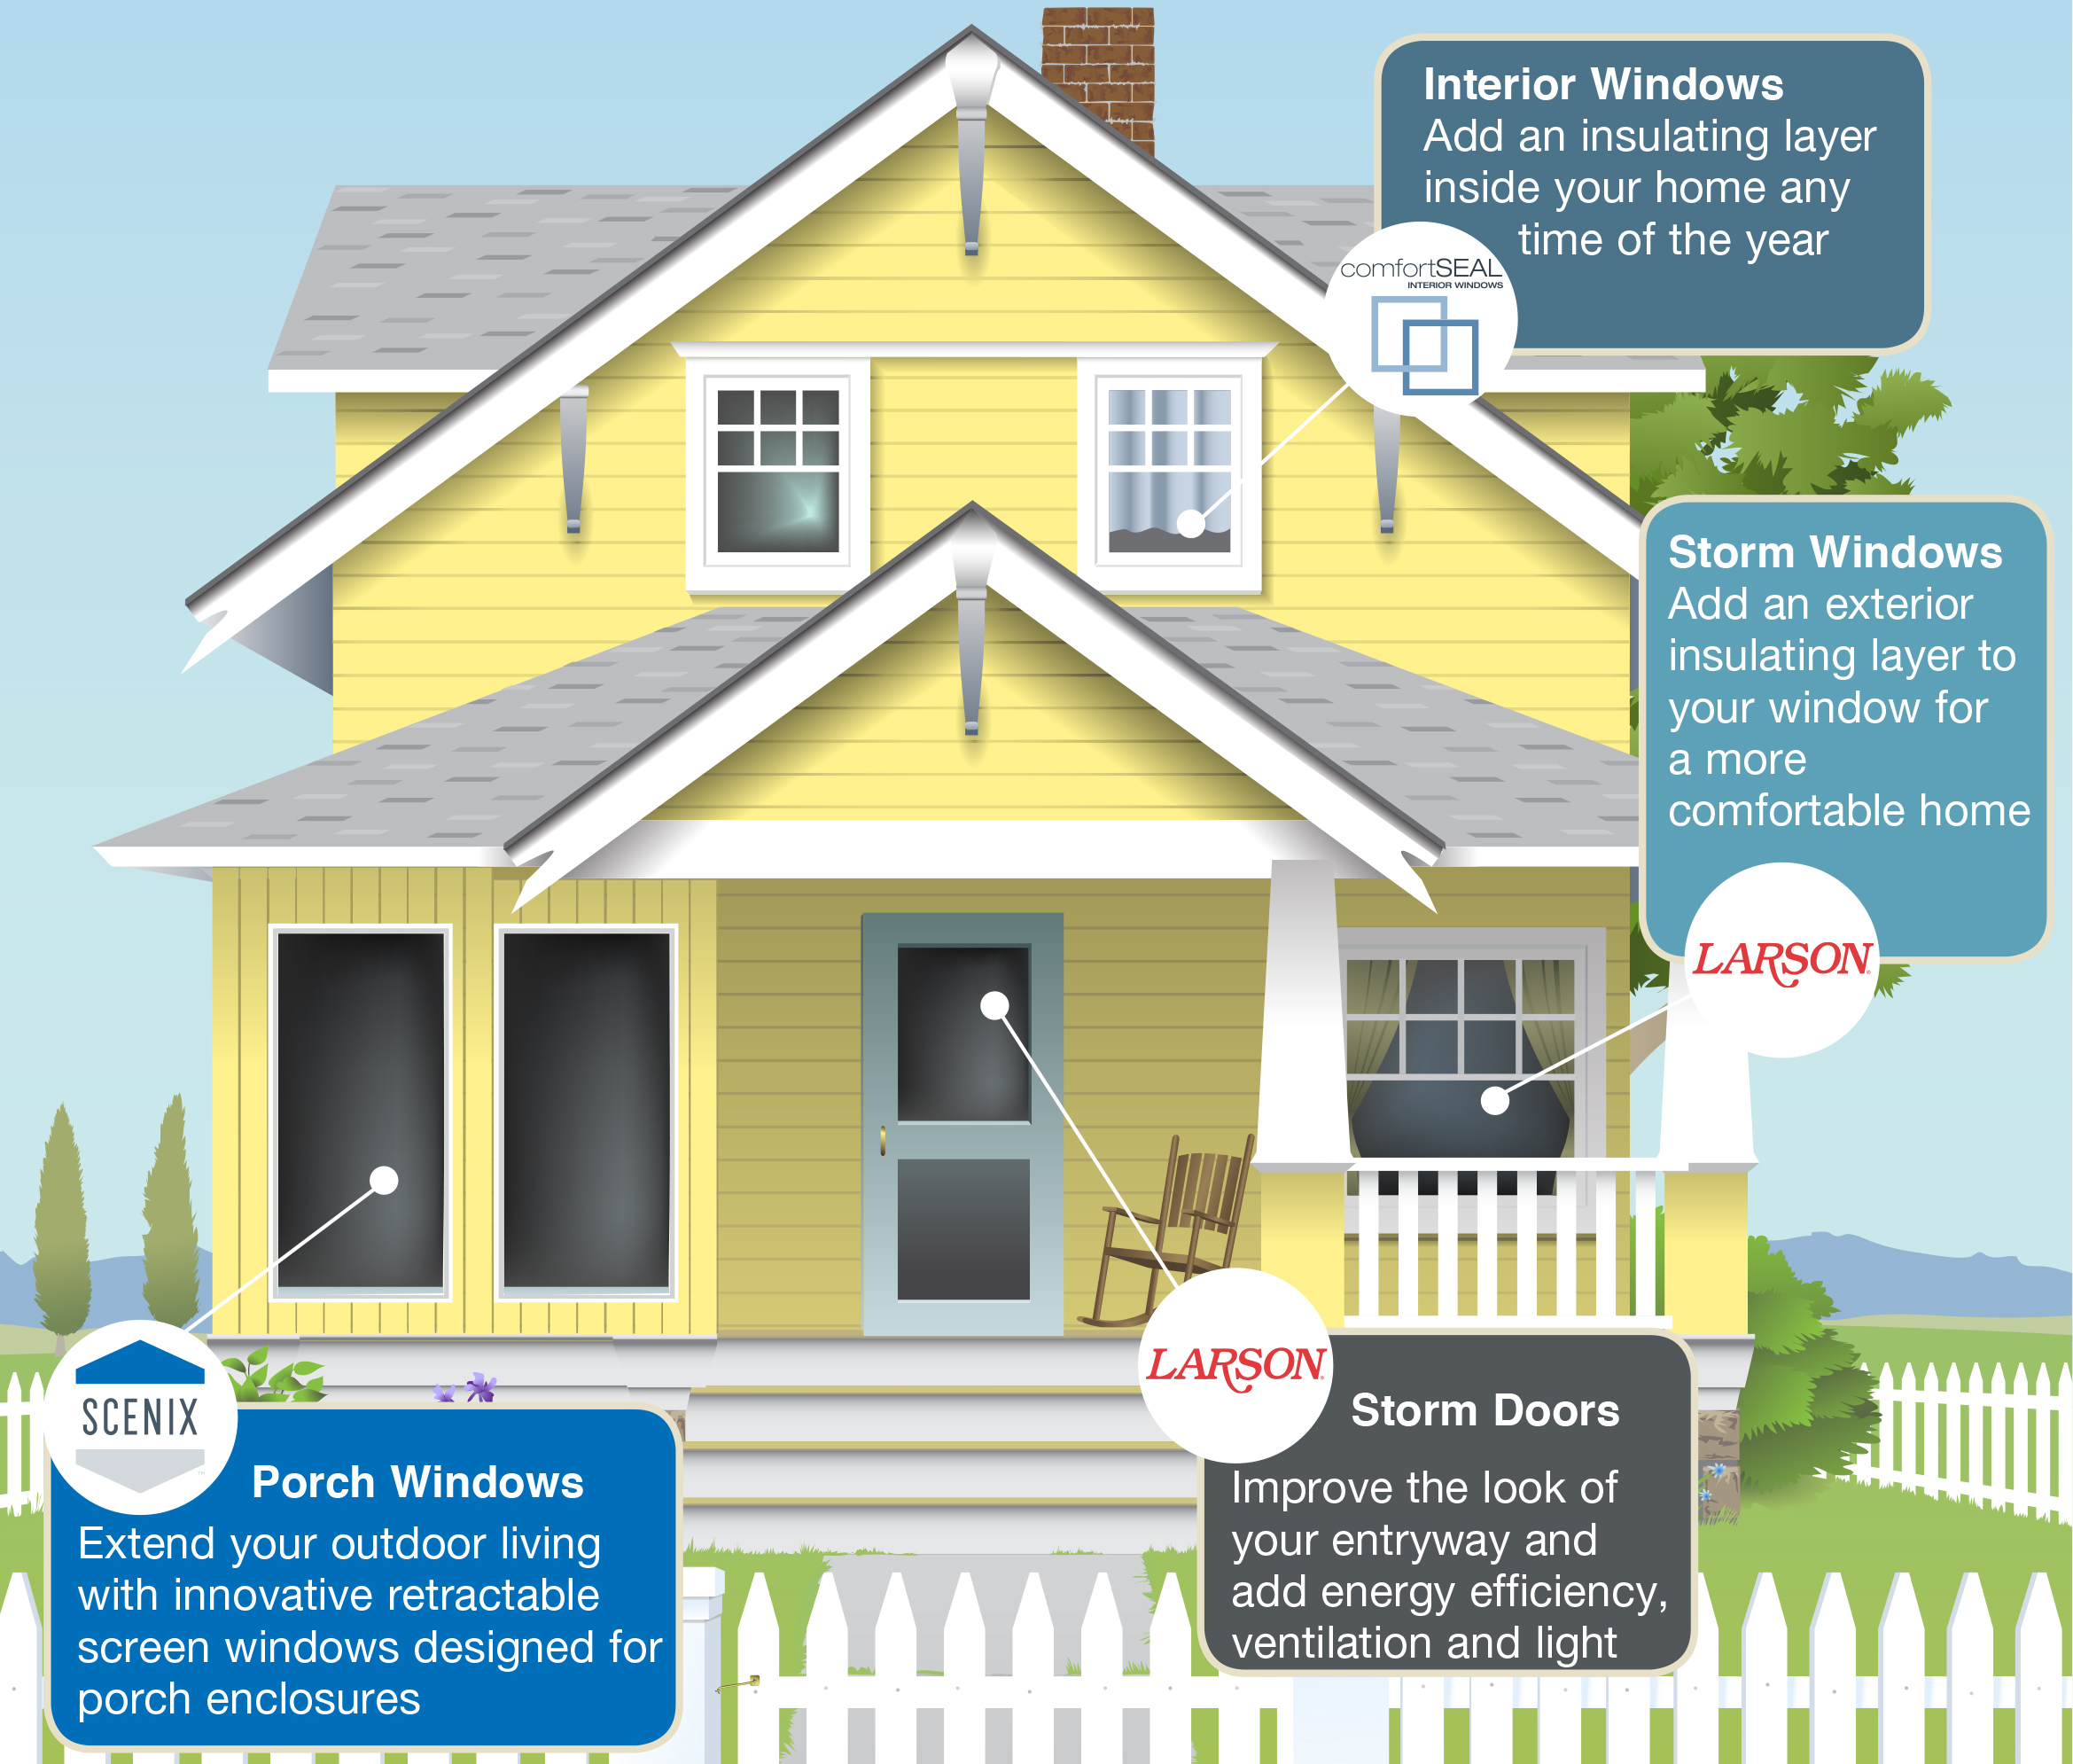 Making Homes Better for 65 Years